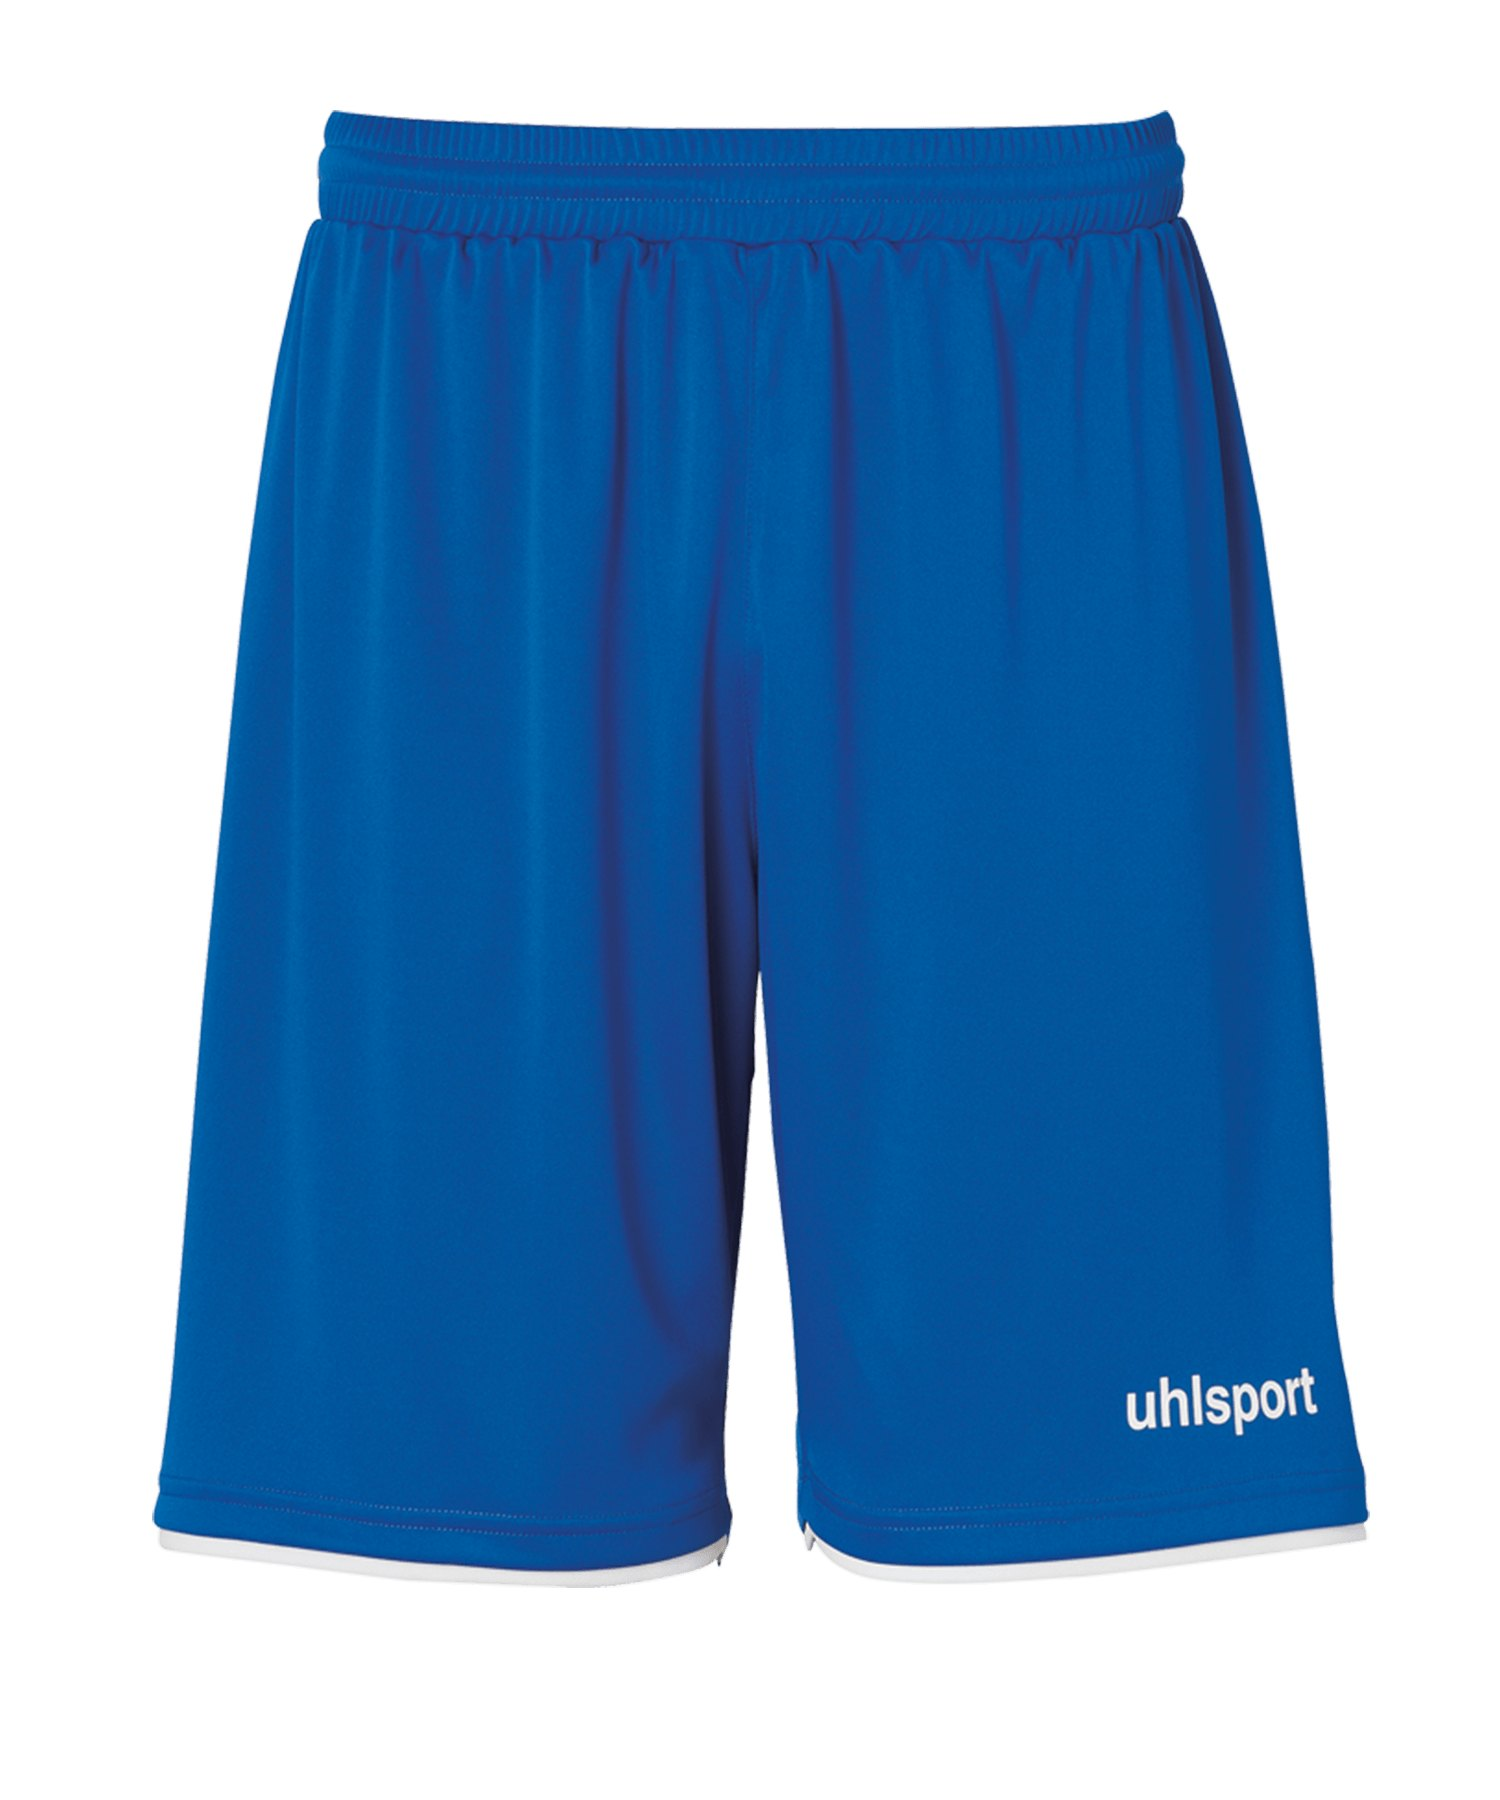 Uhlsport Club Short Blau Weiss F03 - blau